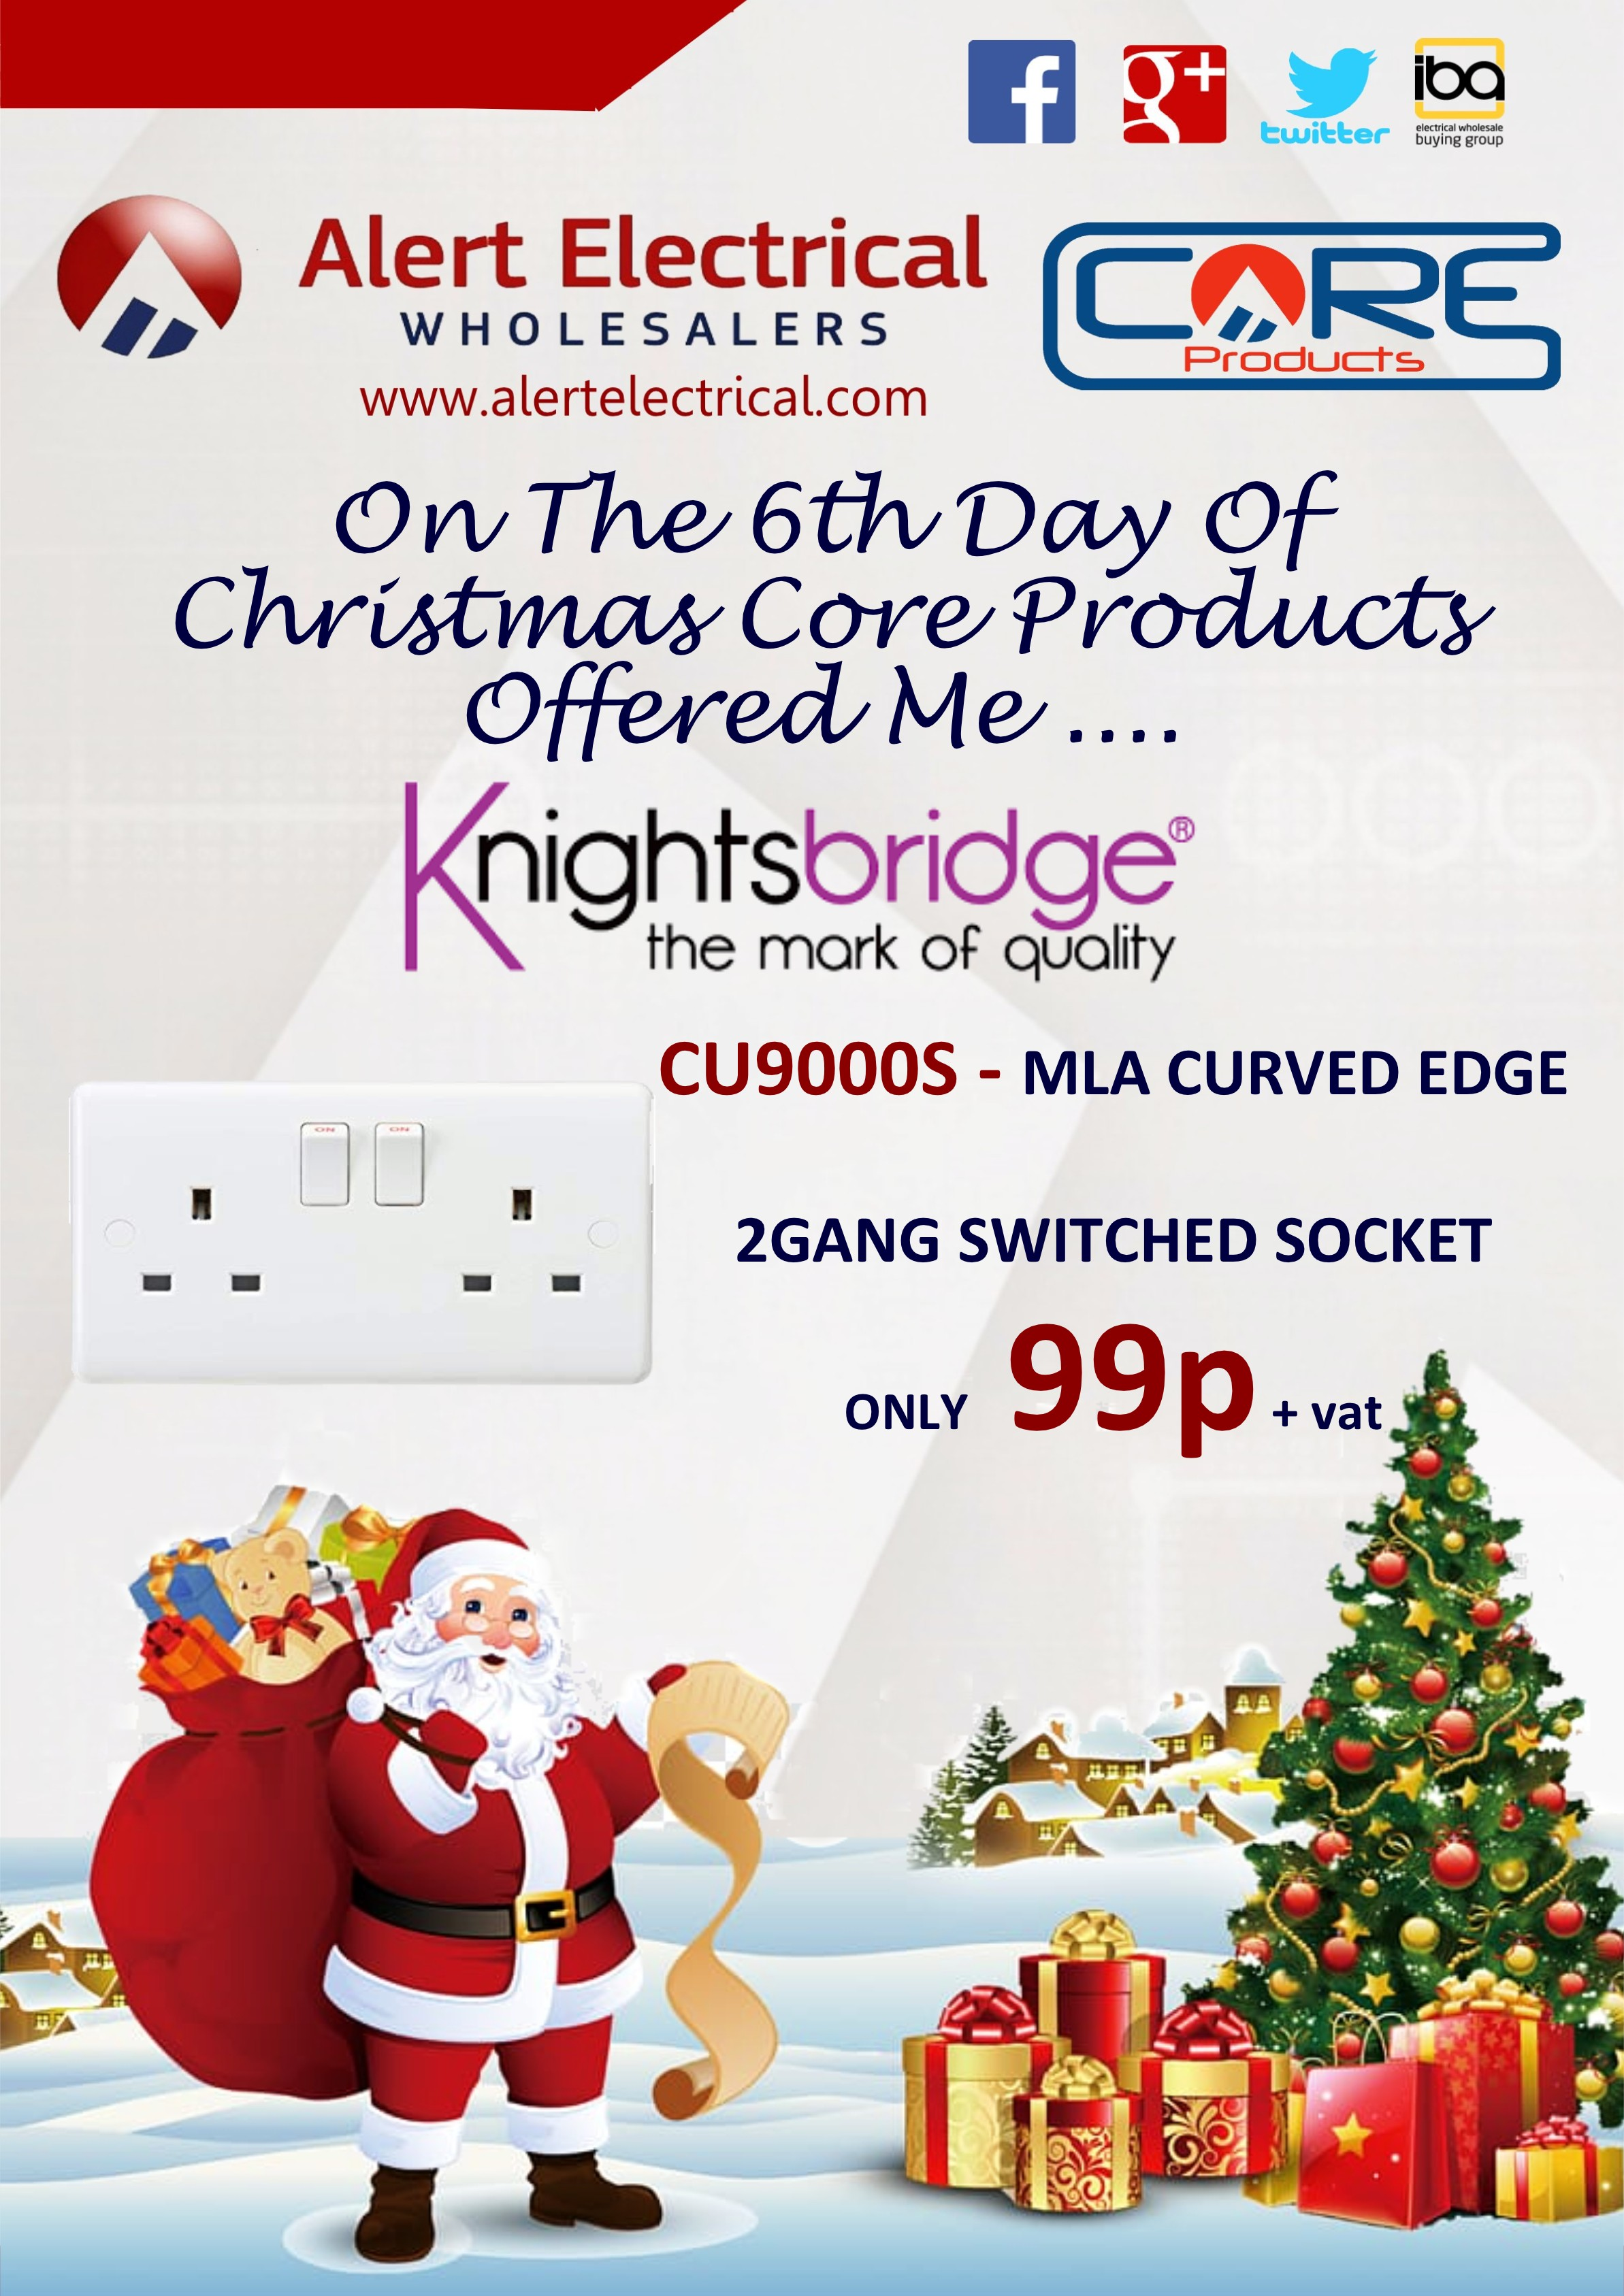 Alert Electrical Wholesalers 12 Days of Christmas. Day 6 MLA Curved Edge 2 Gang Switched Sockets